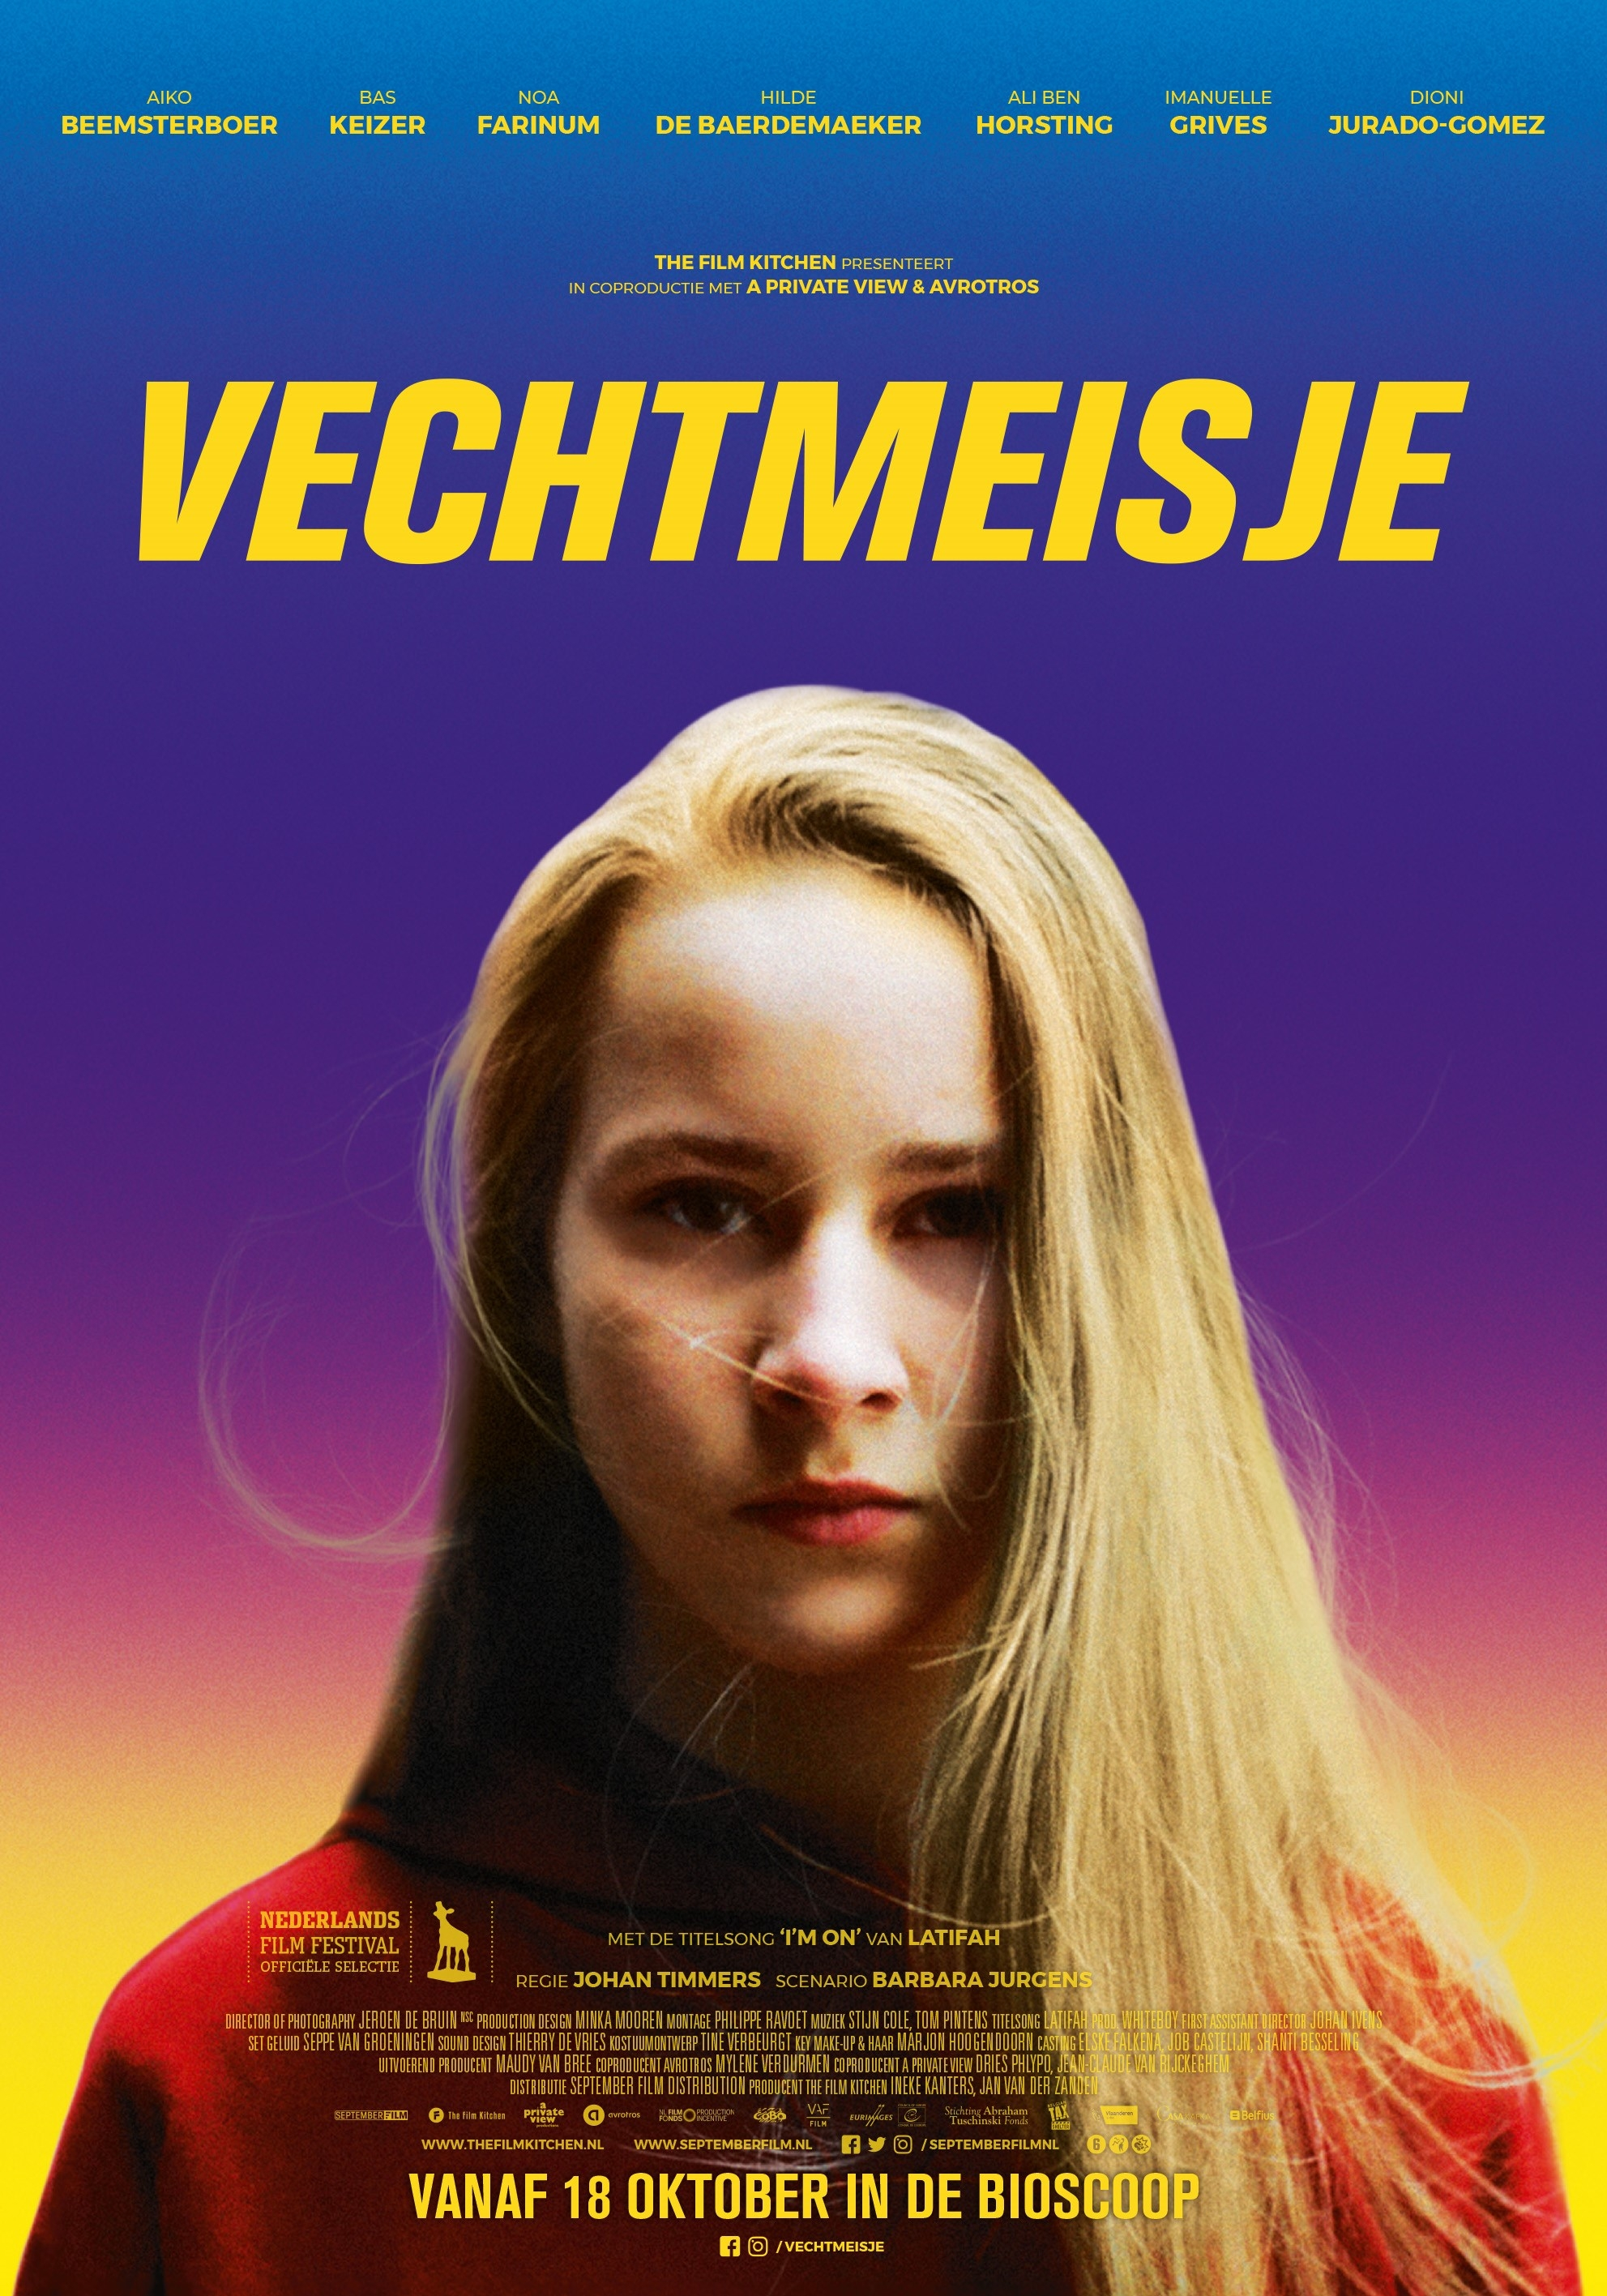 Vechtmeisje poster, © 2018 September